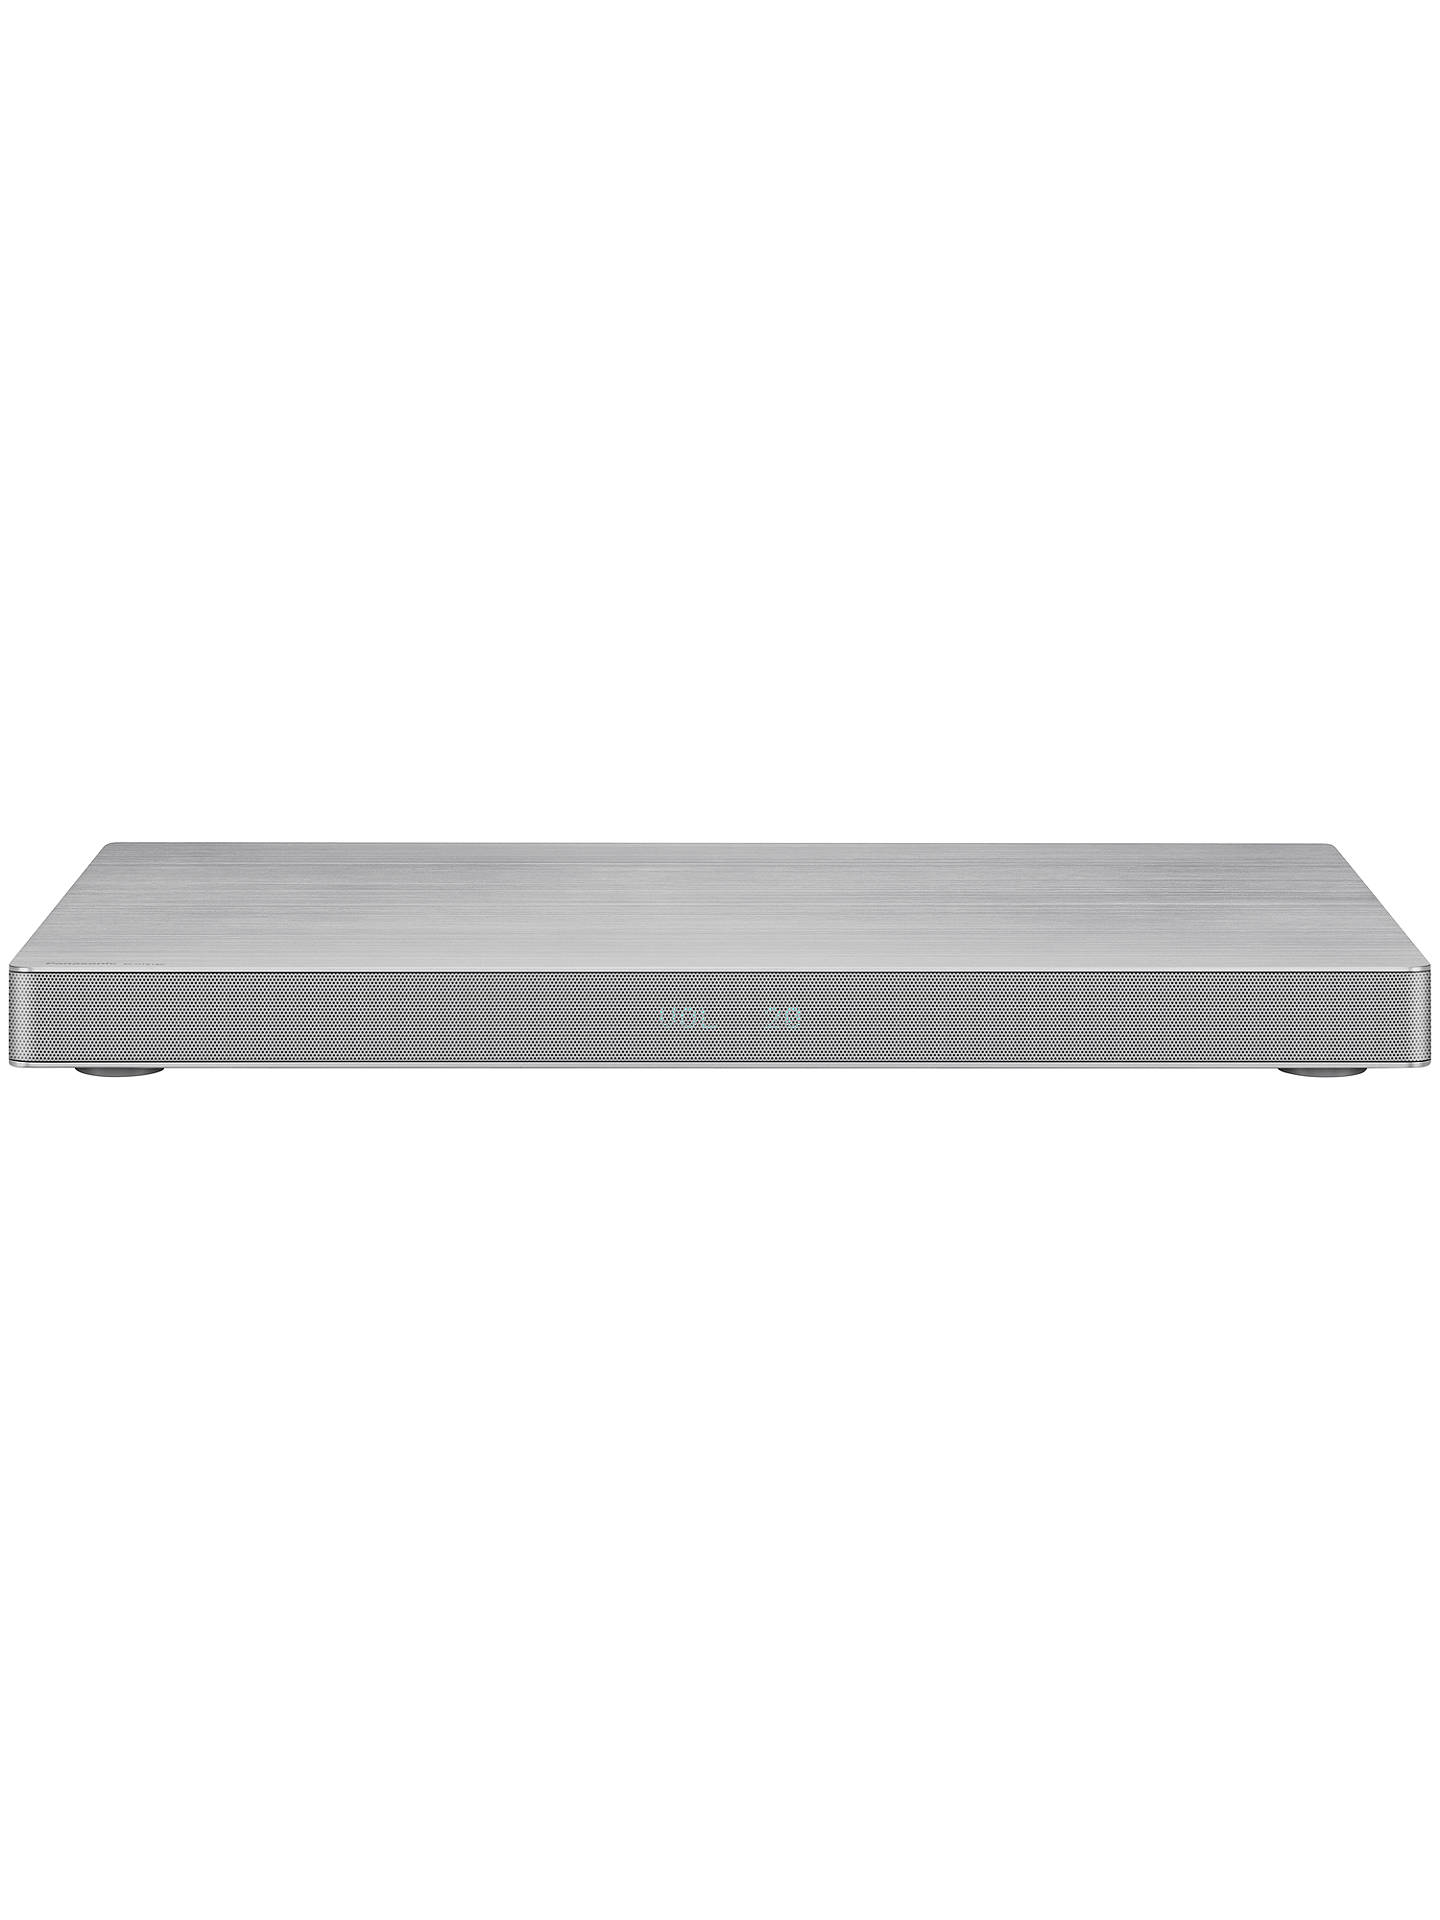 Panasonic Sc Hte180 Speaker Board Nfc Bluetooth Sound Base At John Wiring Devices Philippines Buypanasonic Silver Online Johnlewis